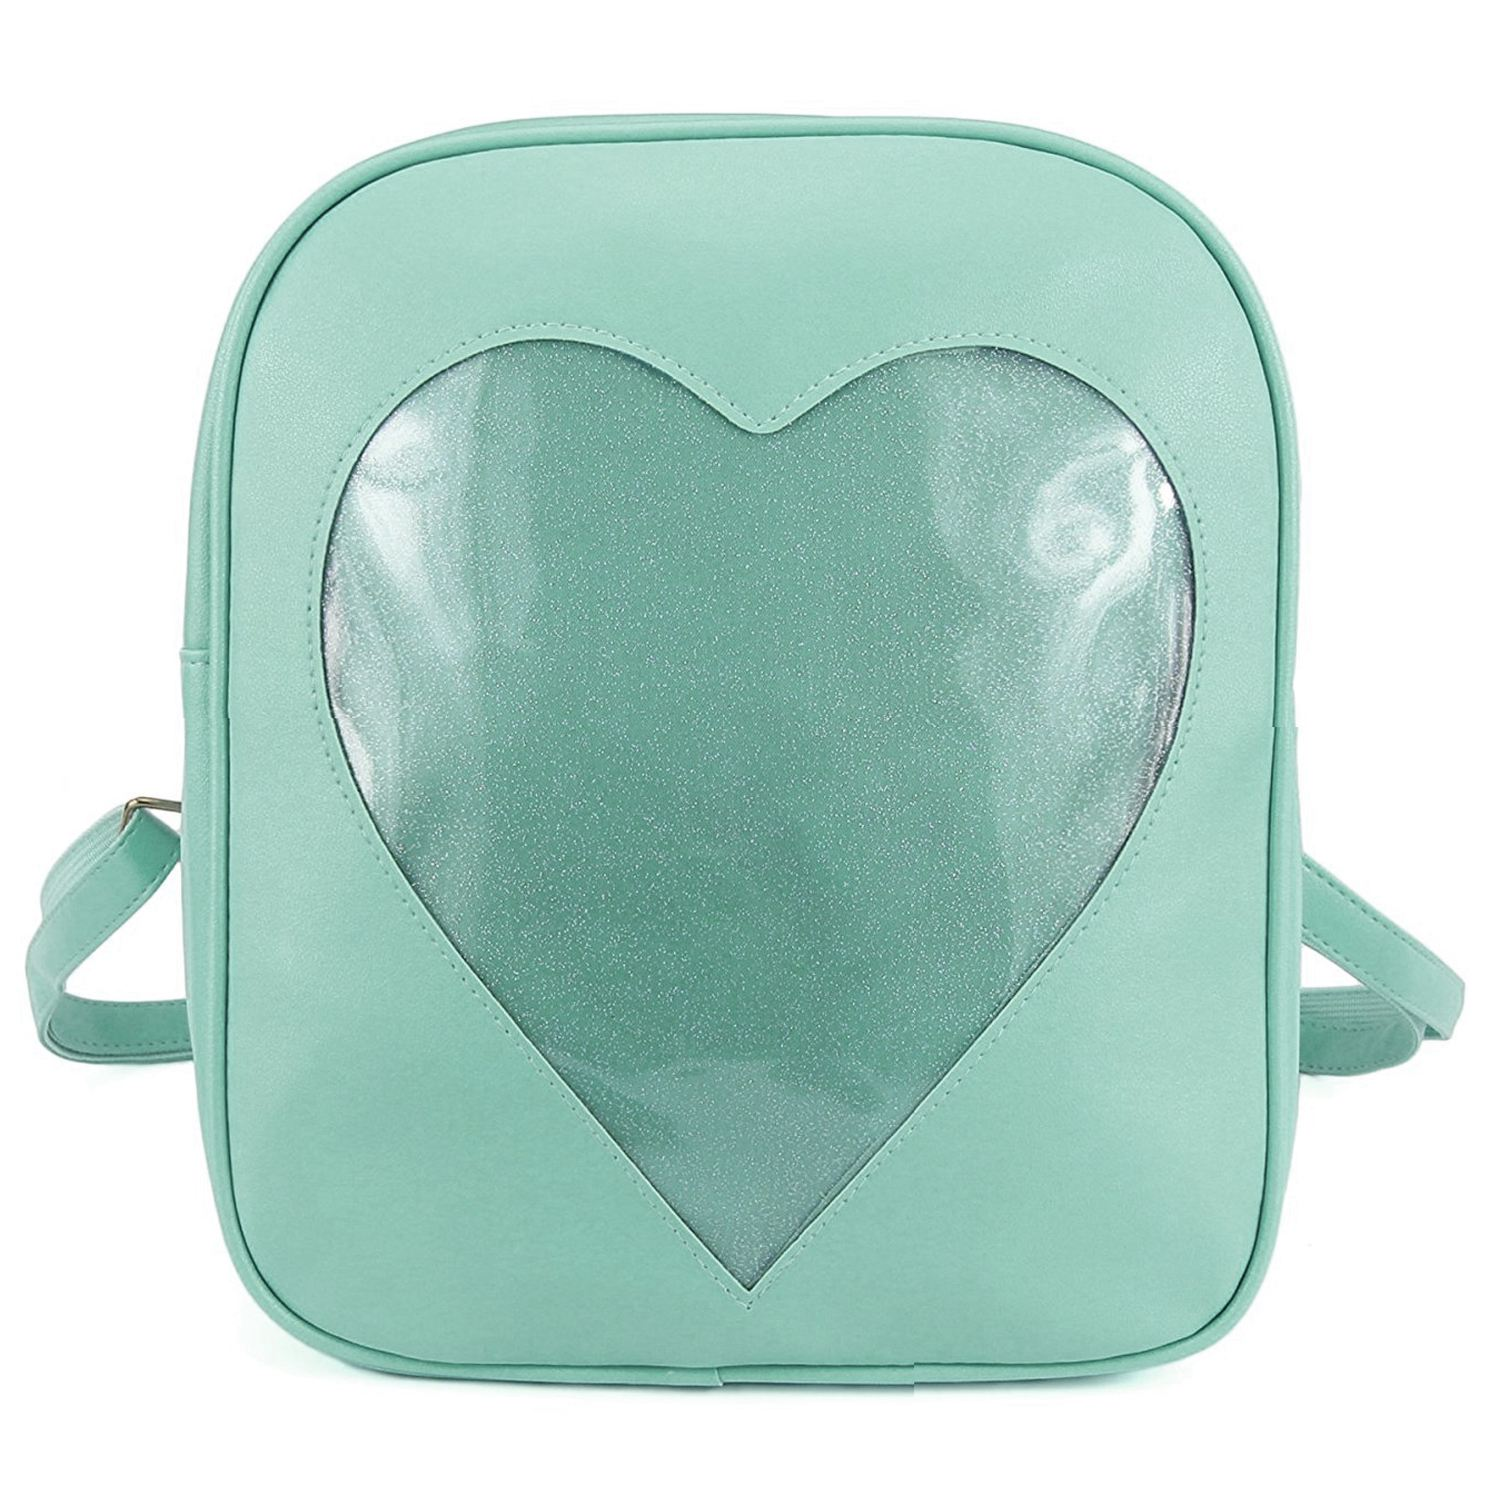 Hot-Clear Candy Backpacks Transparent Love Heart School Bags for Teen Girls Kids Purse Bag(Green)